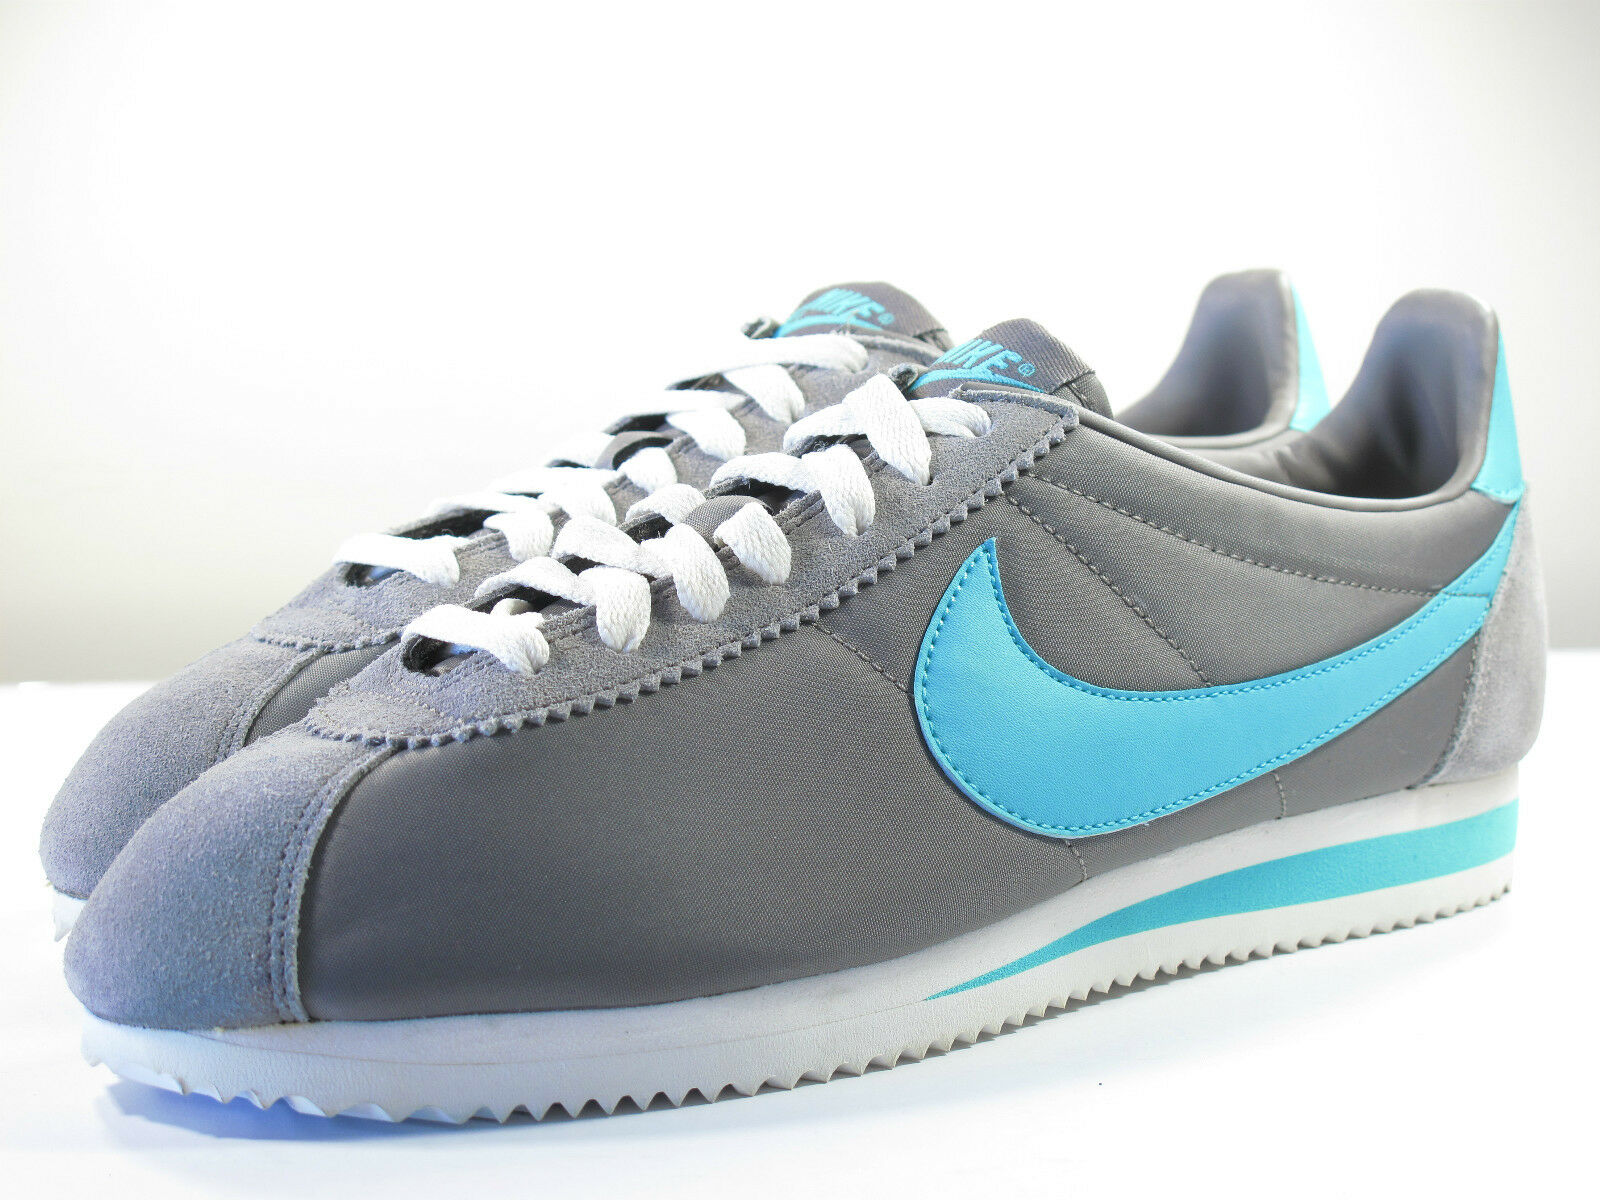 DS NIKE UNRELEASED SAMPLE 2011 CORTEZ GREY 9 VINTAGE TERMINATOR VANDAL WOVEN